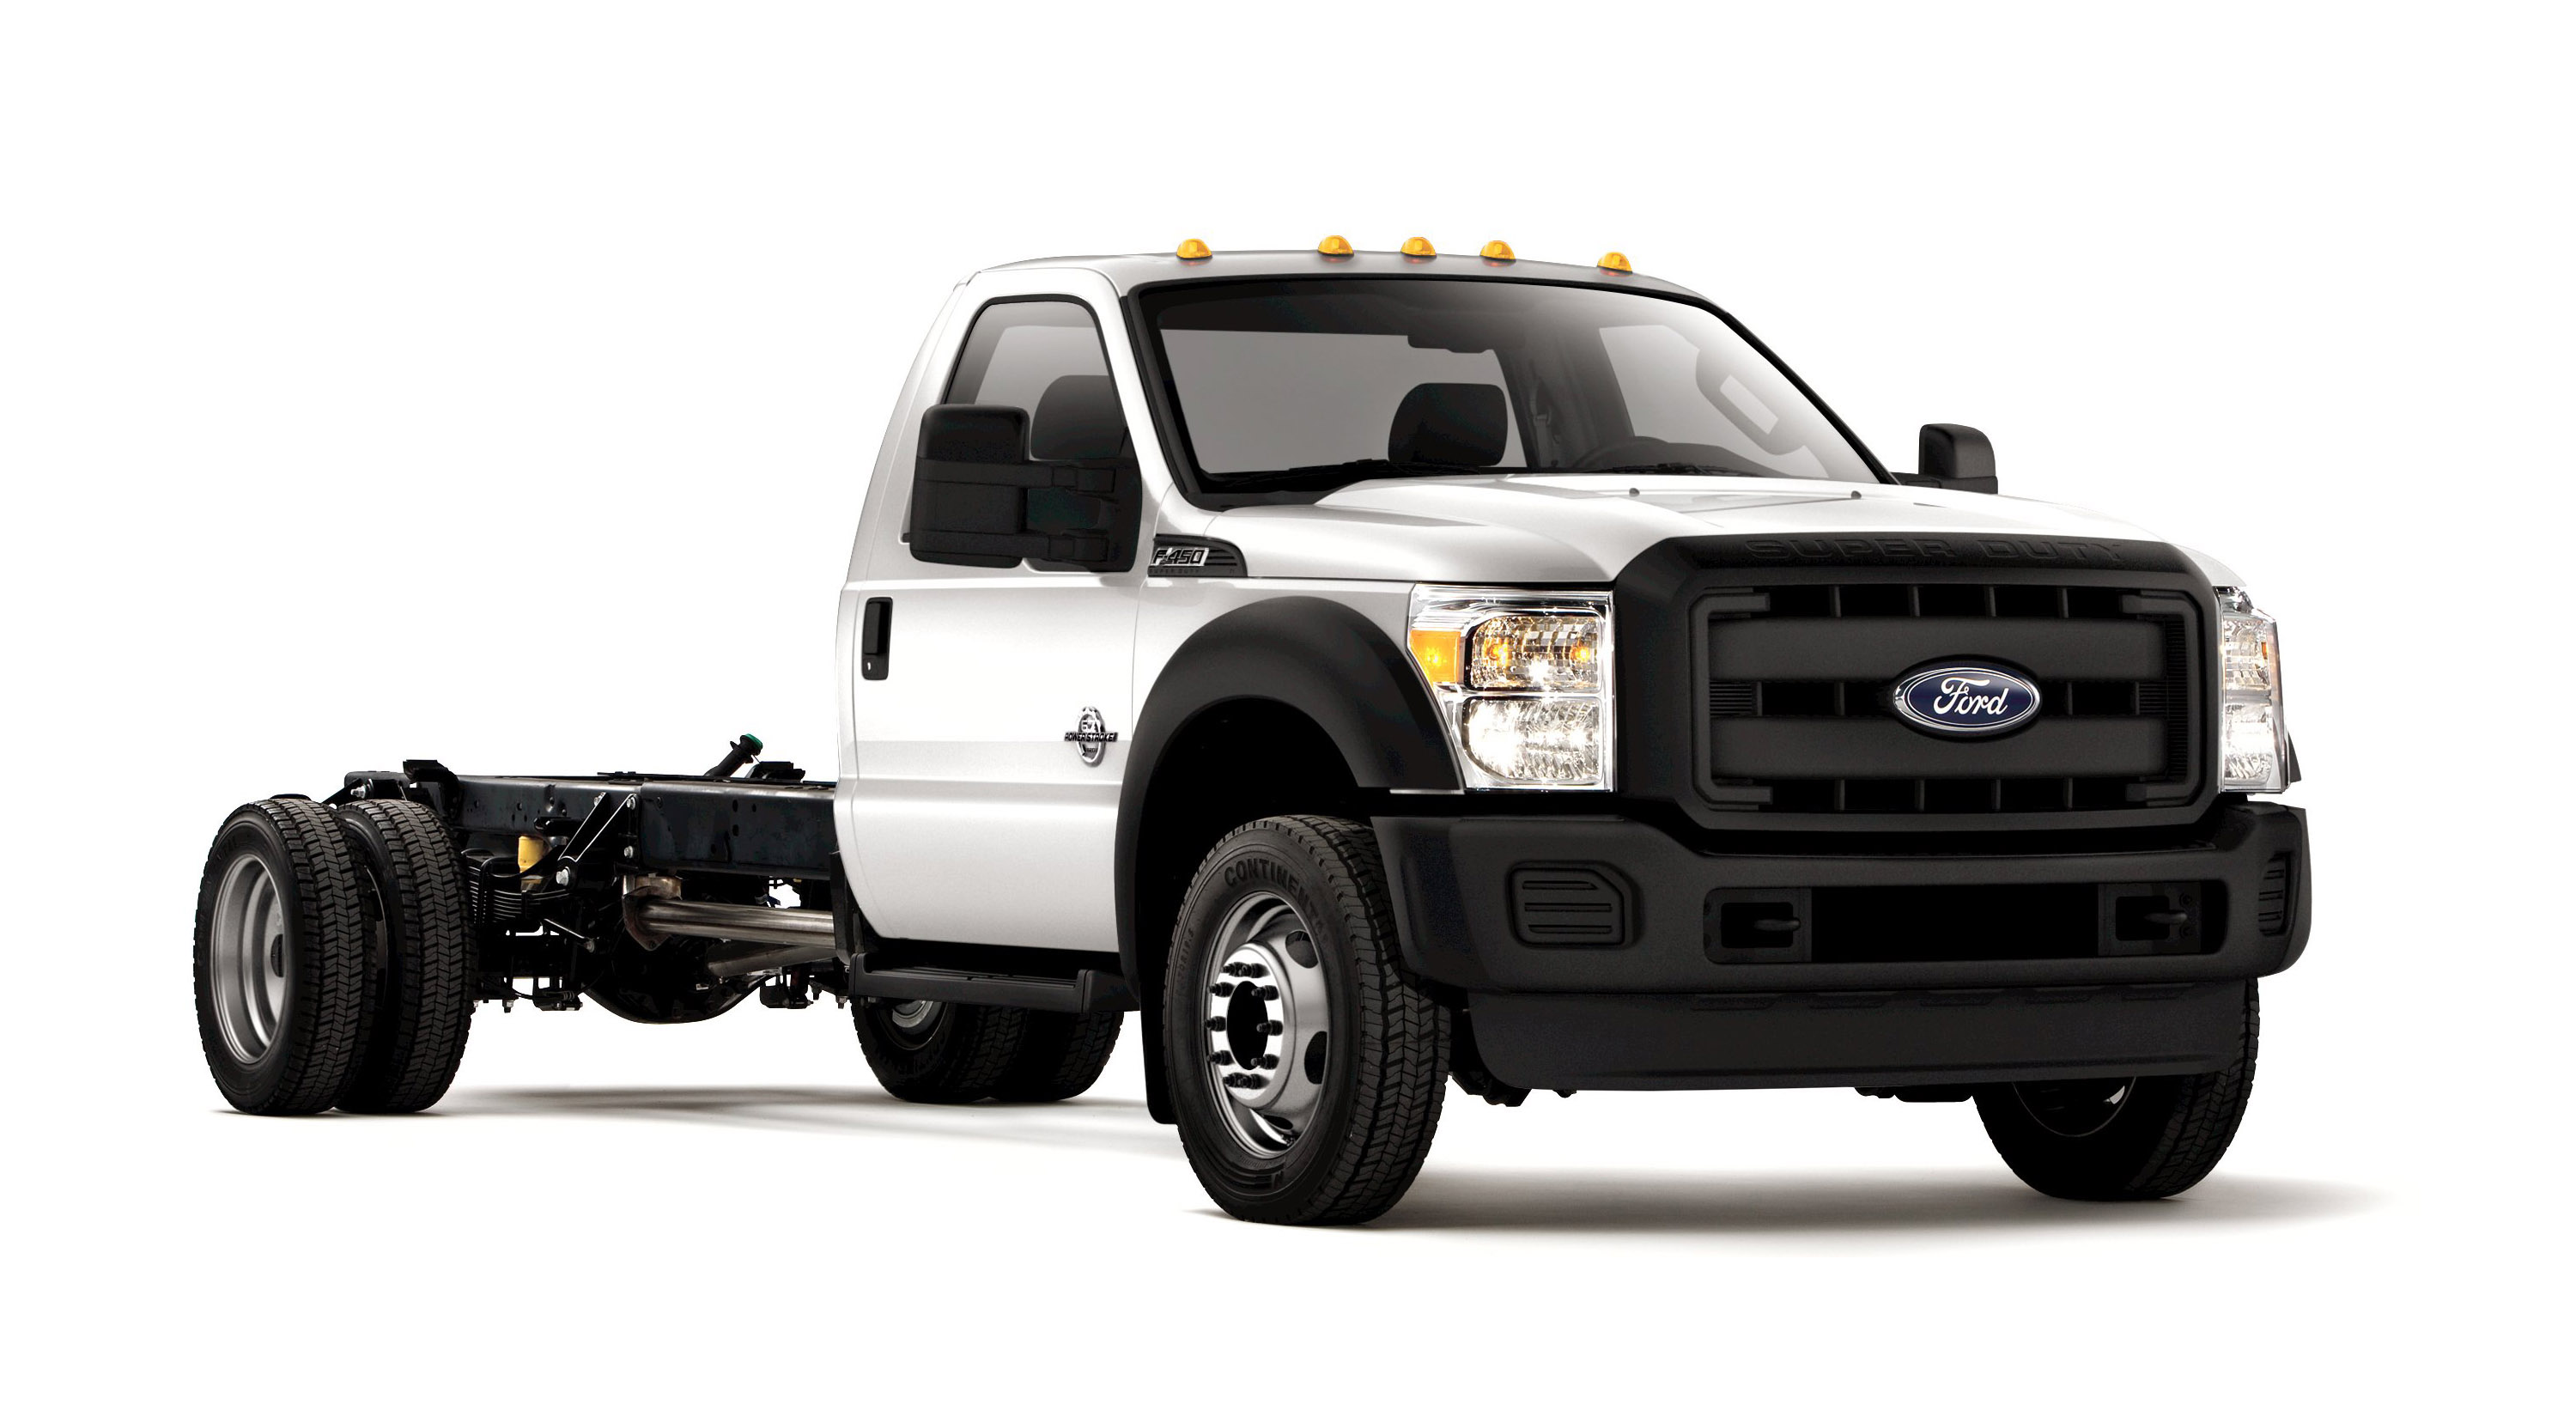 60075552009-ford-f-450-super-duty-7 Great Description About F450 Vs F550 with Breathtaking Gallery Cars Review